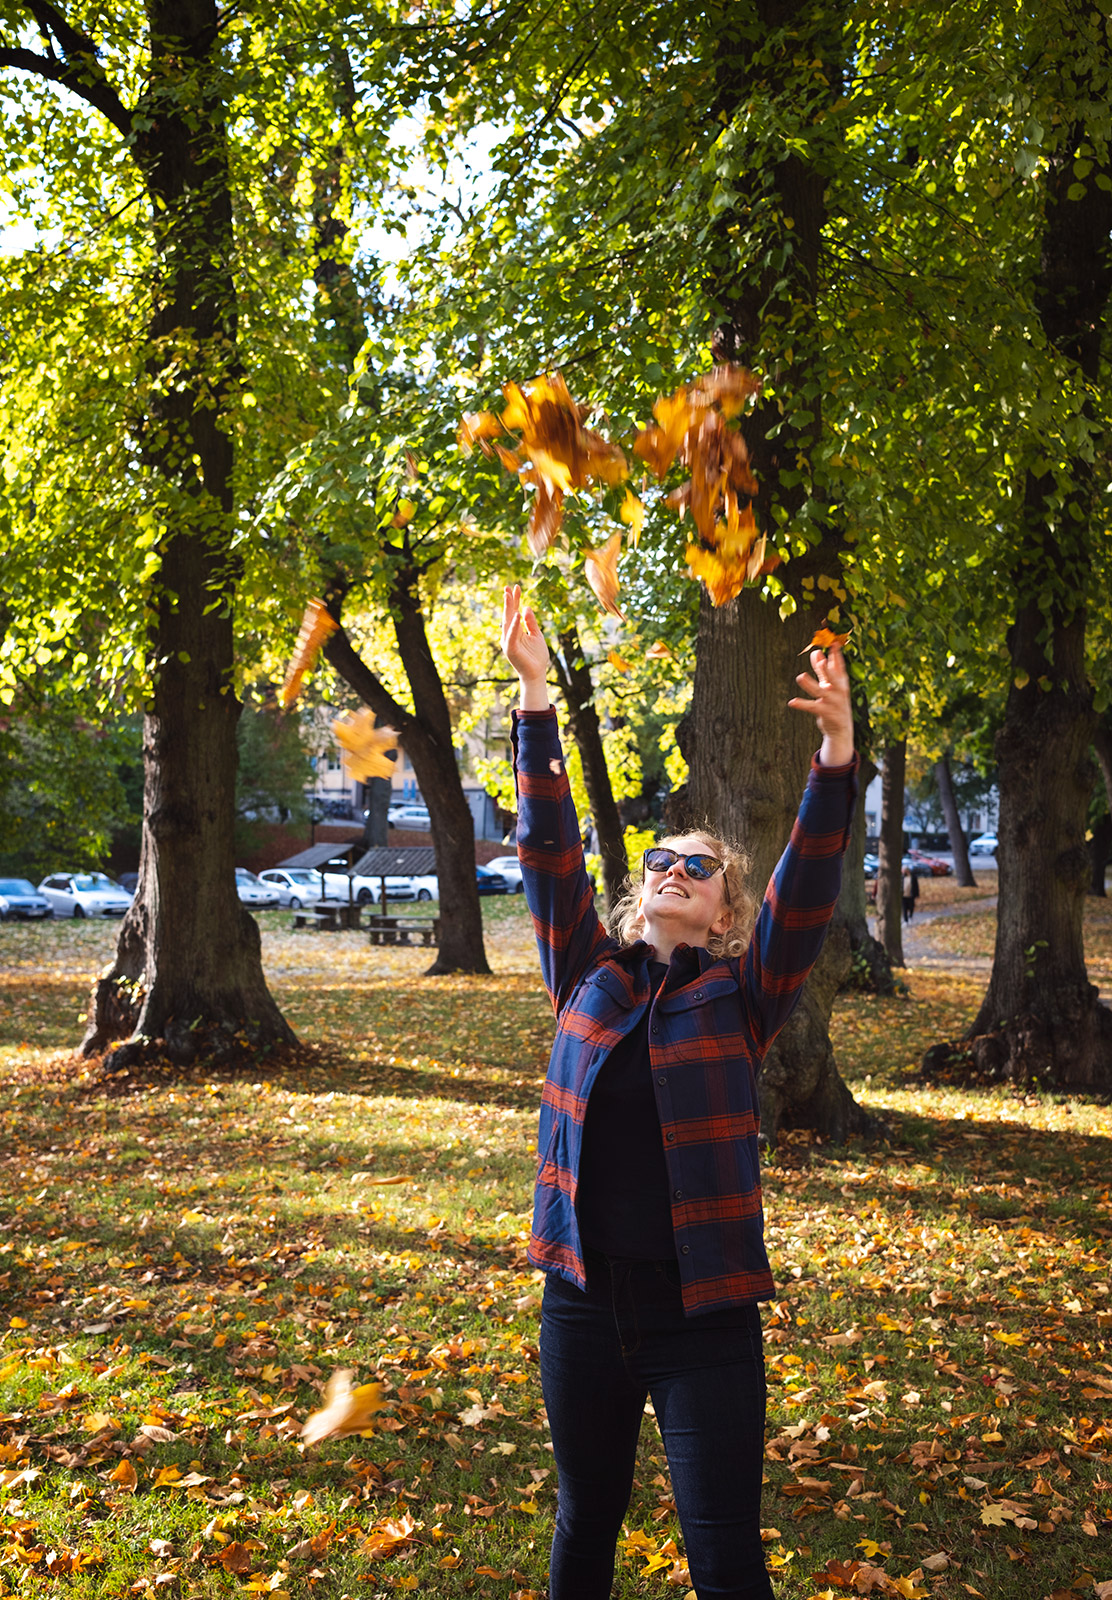 Throwing leaves in the air